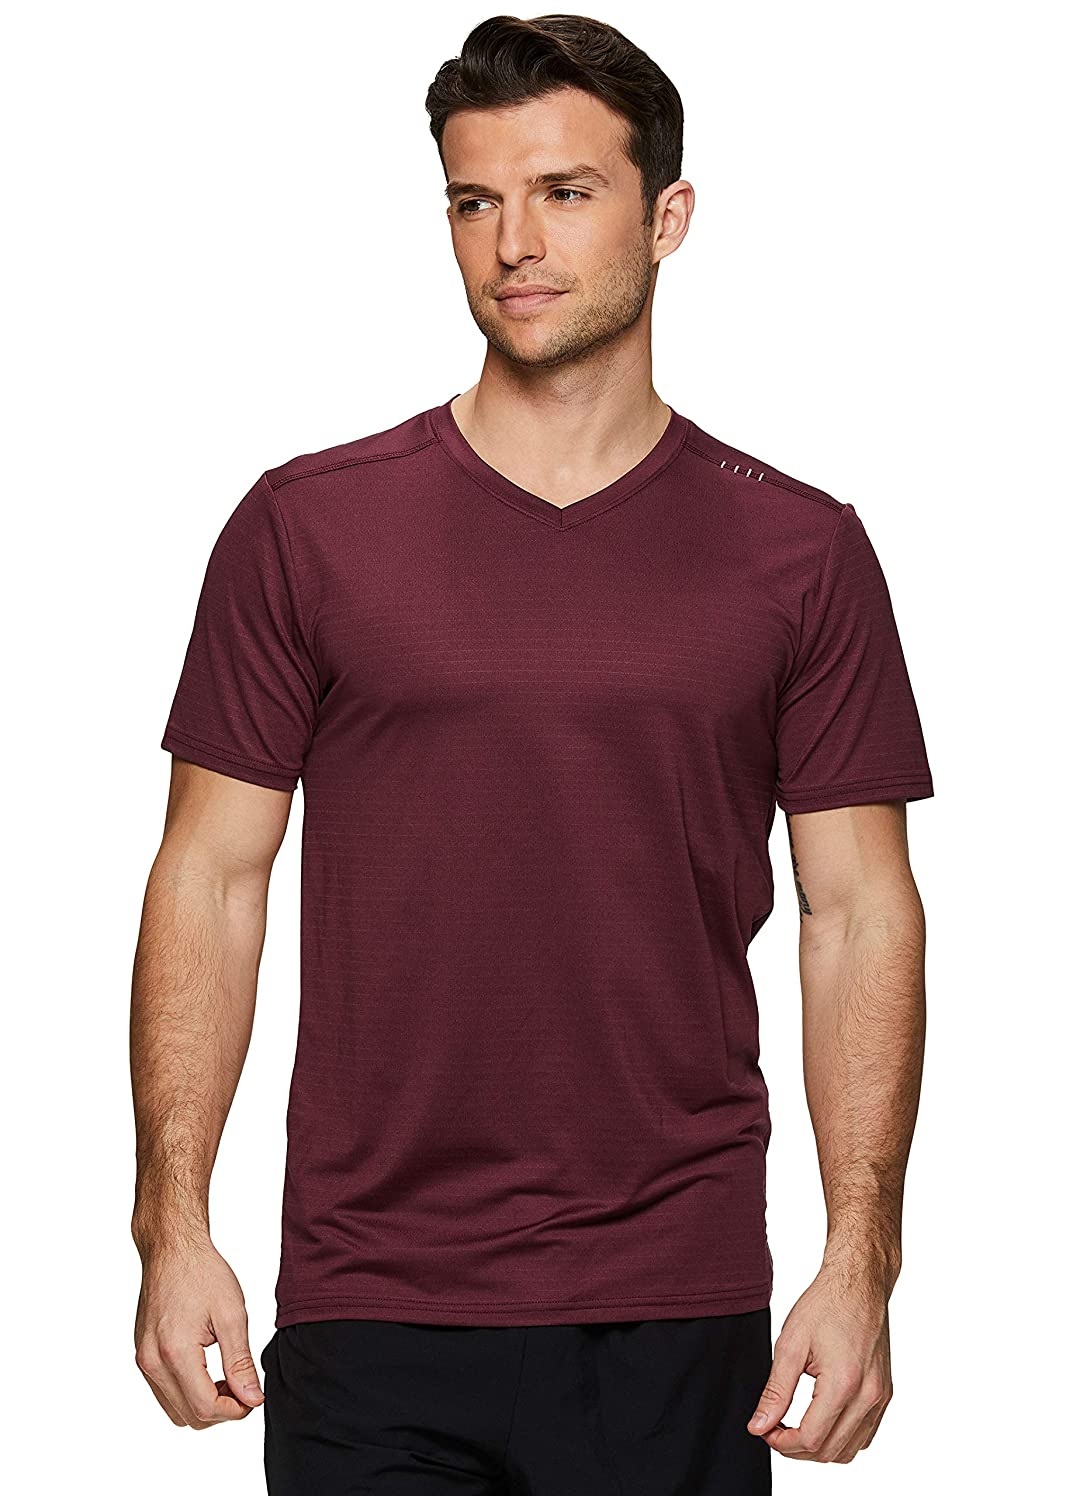 RBX Active Men's Performance Workout Gym Short Sleeve T-Shirt